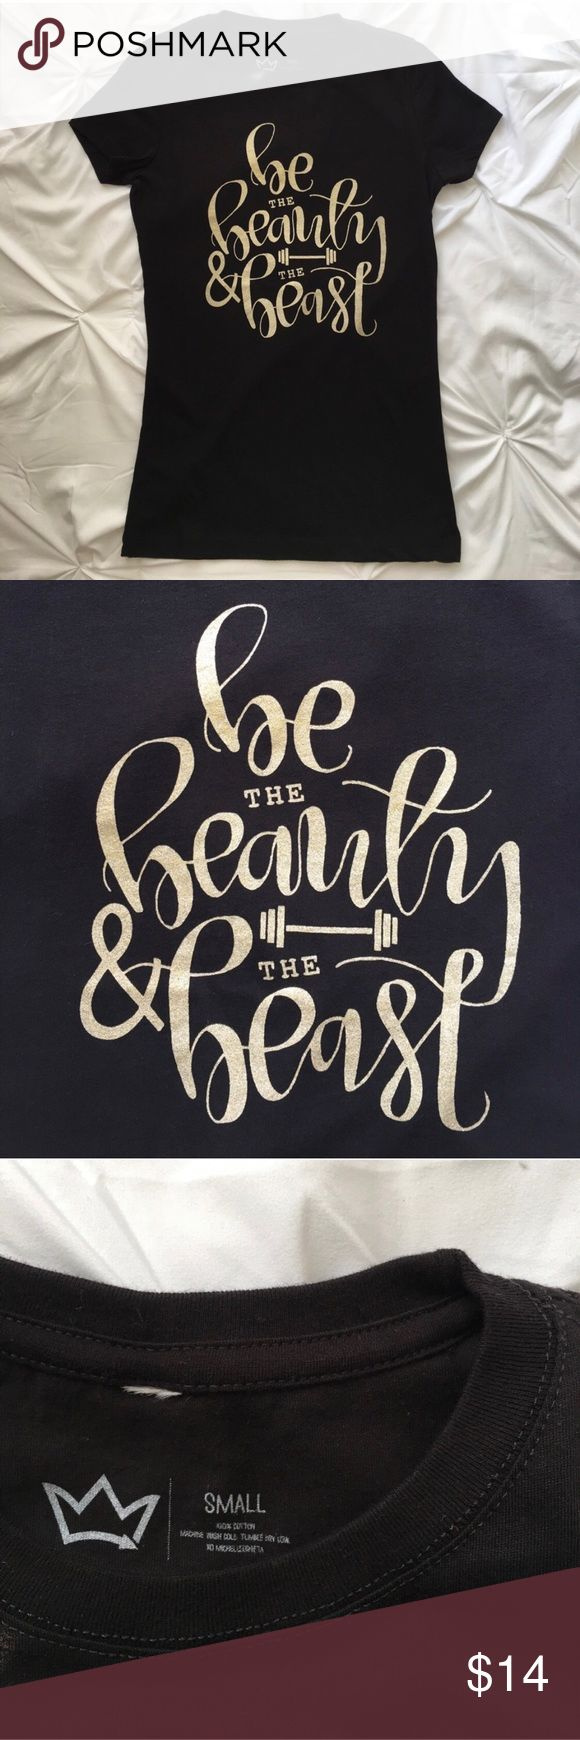 ✨CUSTOM MADE✨ Be the Beauty & the Beast T-Shirt This shirt's design was custom made by one of my friends! Designed to empower ladies to be the beauty and the beast. Can be worn as a lifestyle shirt or at the gym. Hand calligraphy is metallic gold and screen printed on a 3300L Perfect Tee by Next Level Apparel shirt. 100% cotton. Machine wash cold. Tumble dry low. All shirts are brand new and never worn.  AVAILABLE IN SIZES: SMALL MEDIUM LARGE X-LARGE  *** If you would like to bundle multiple…